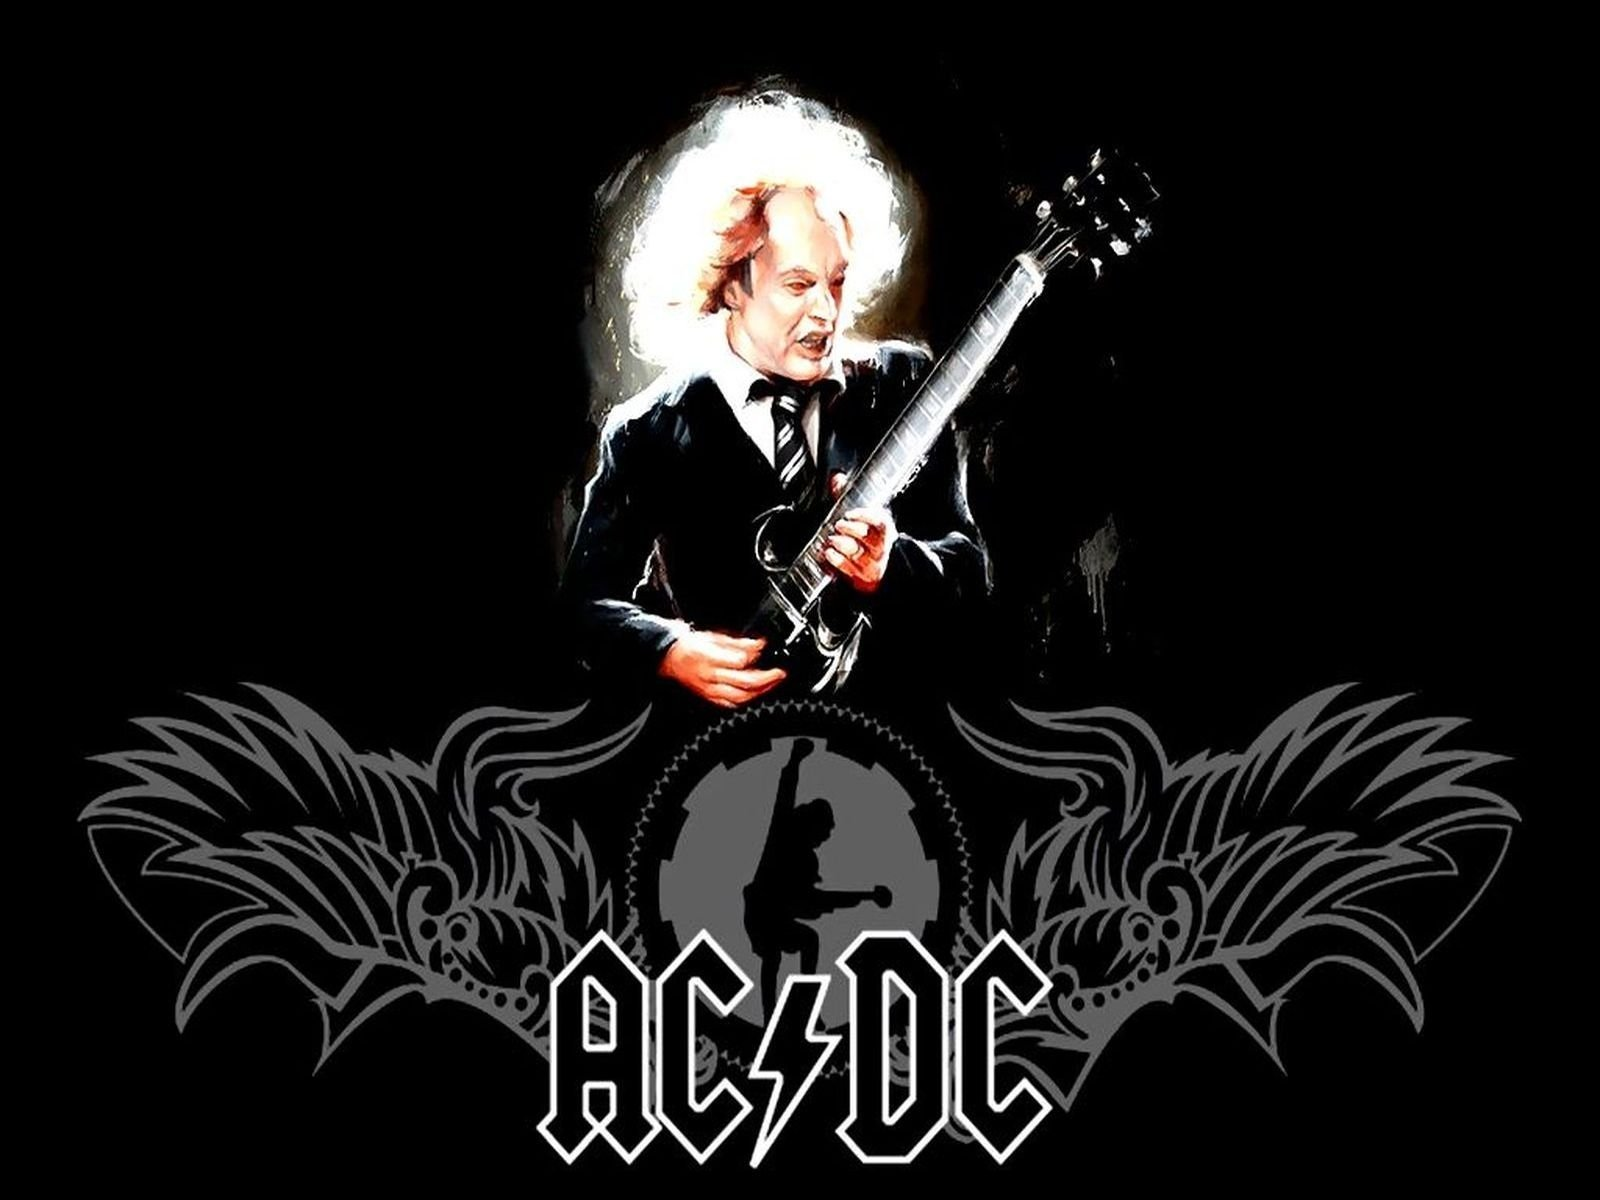 Ac dc wallpaper and background image 1600x1200 id - Ac dc wallpaper for android ...